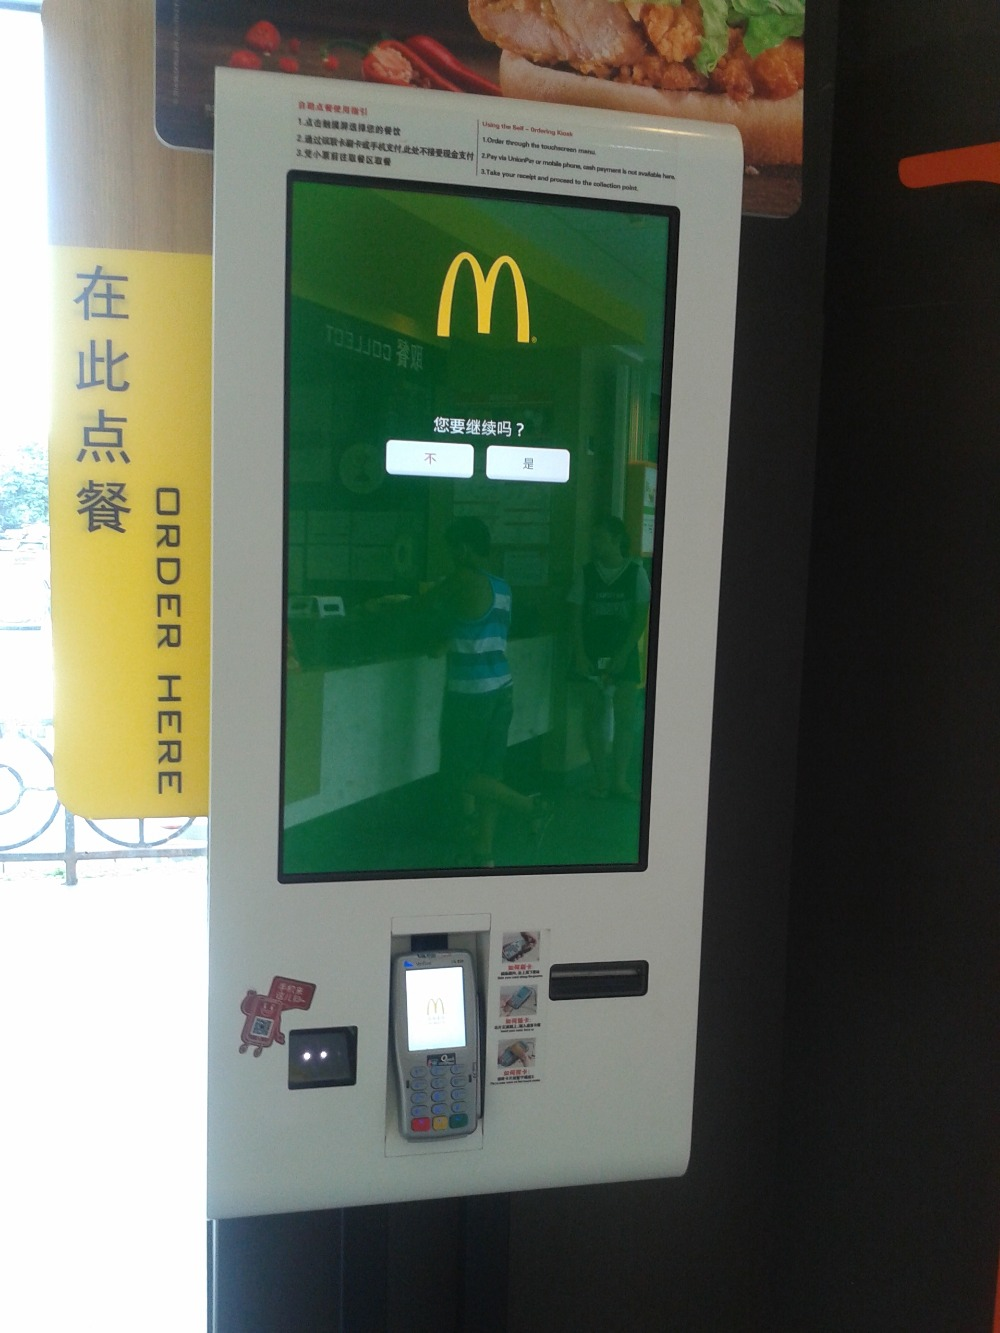 15 17 19 inch LCD hd tft Buffet meal bank card self service wireless Touch interactive payment smart terminal diy computer pc15 17 19 inch LCD hd tft Buffet meal bank card self service wireless Touch interactive payment smart terminal diy computer pc